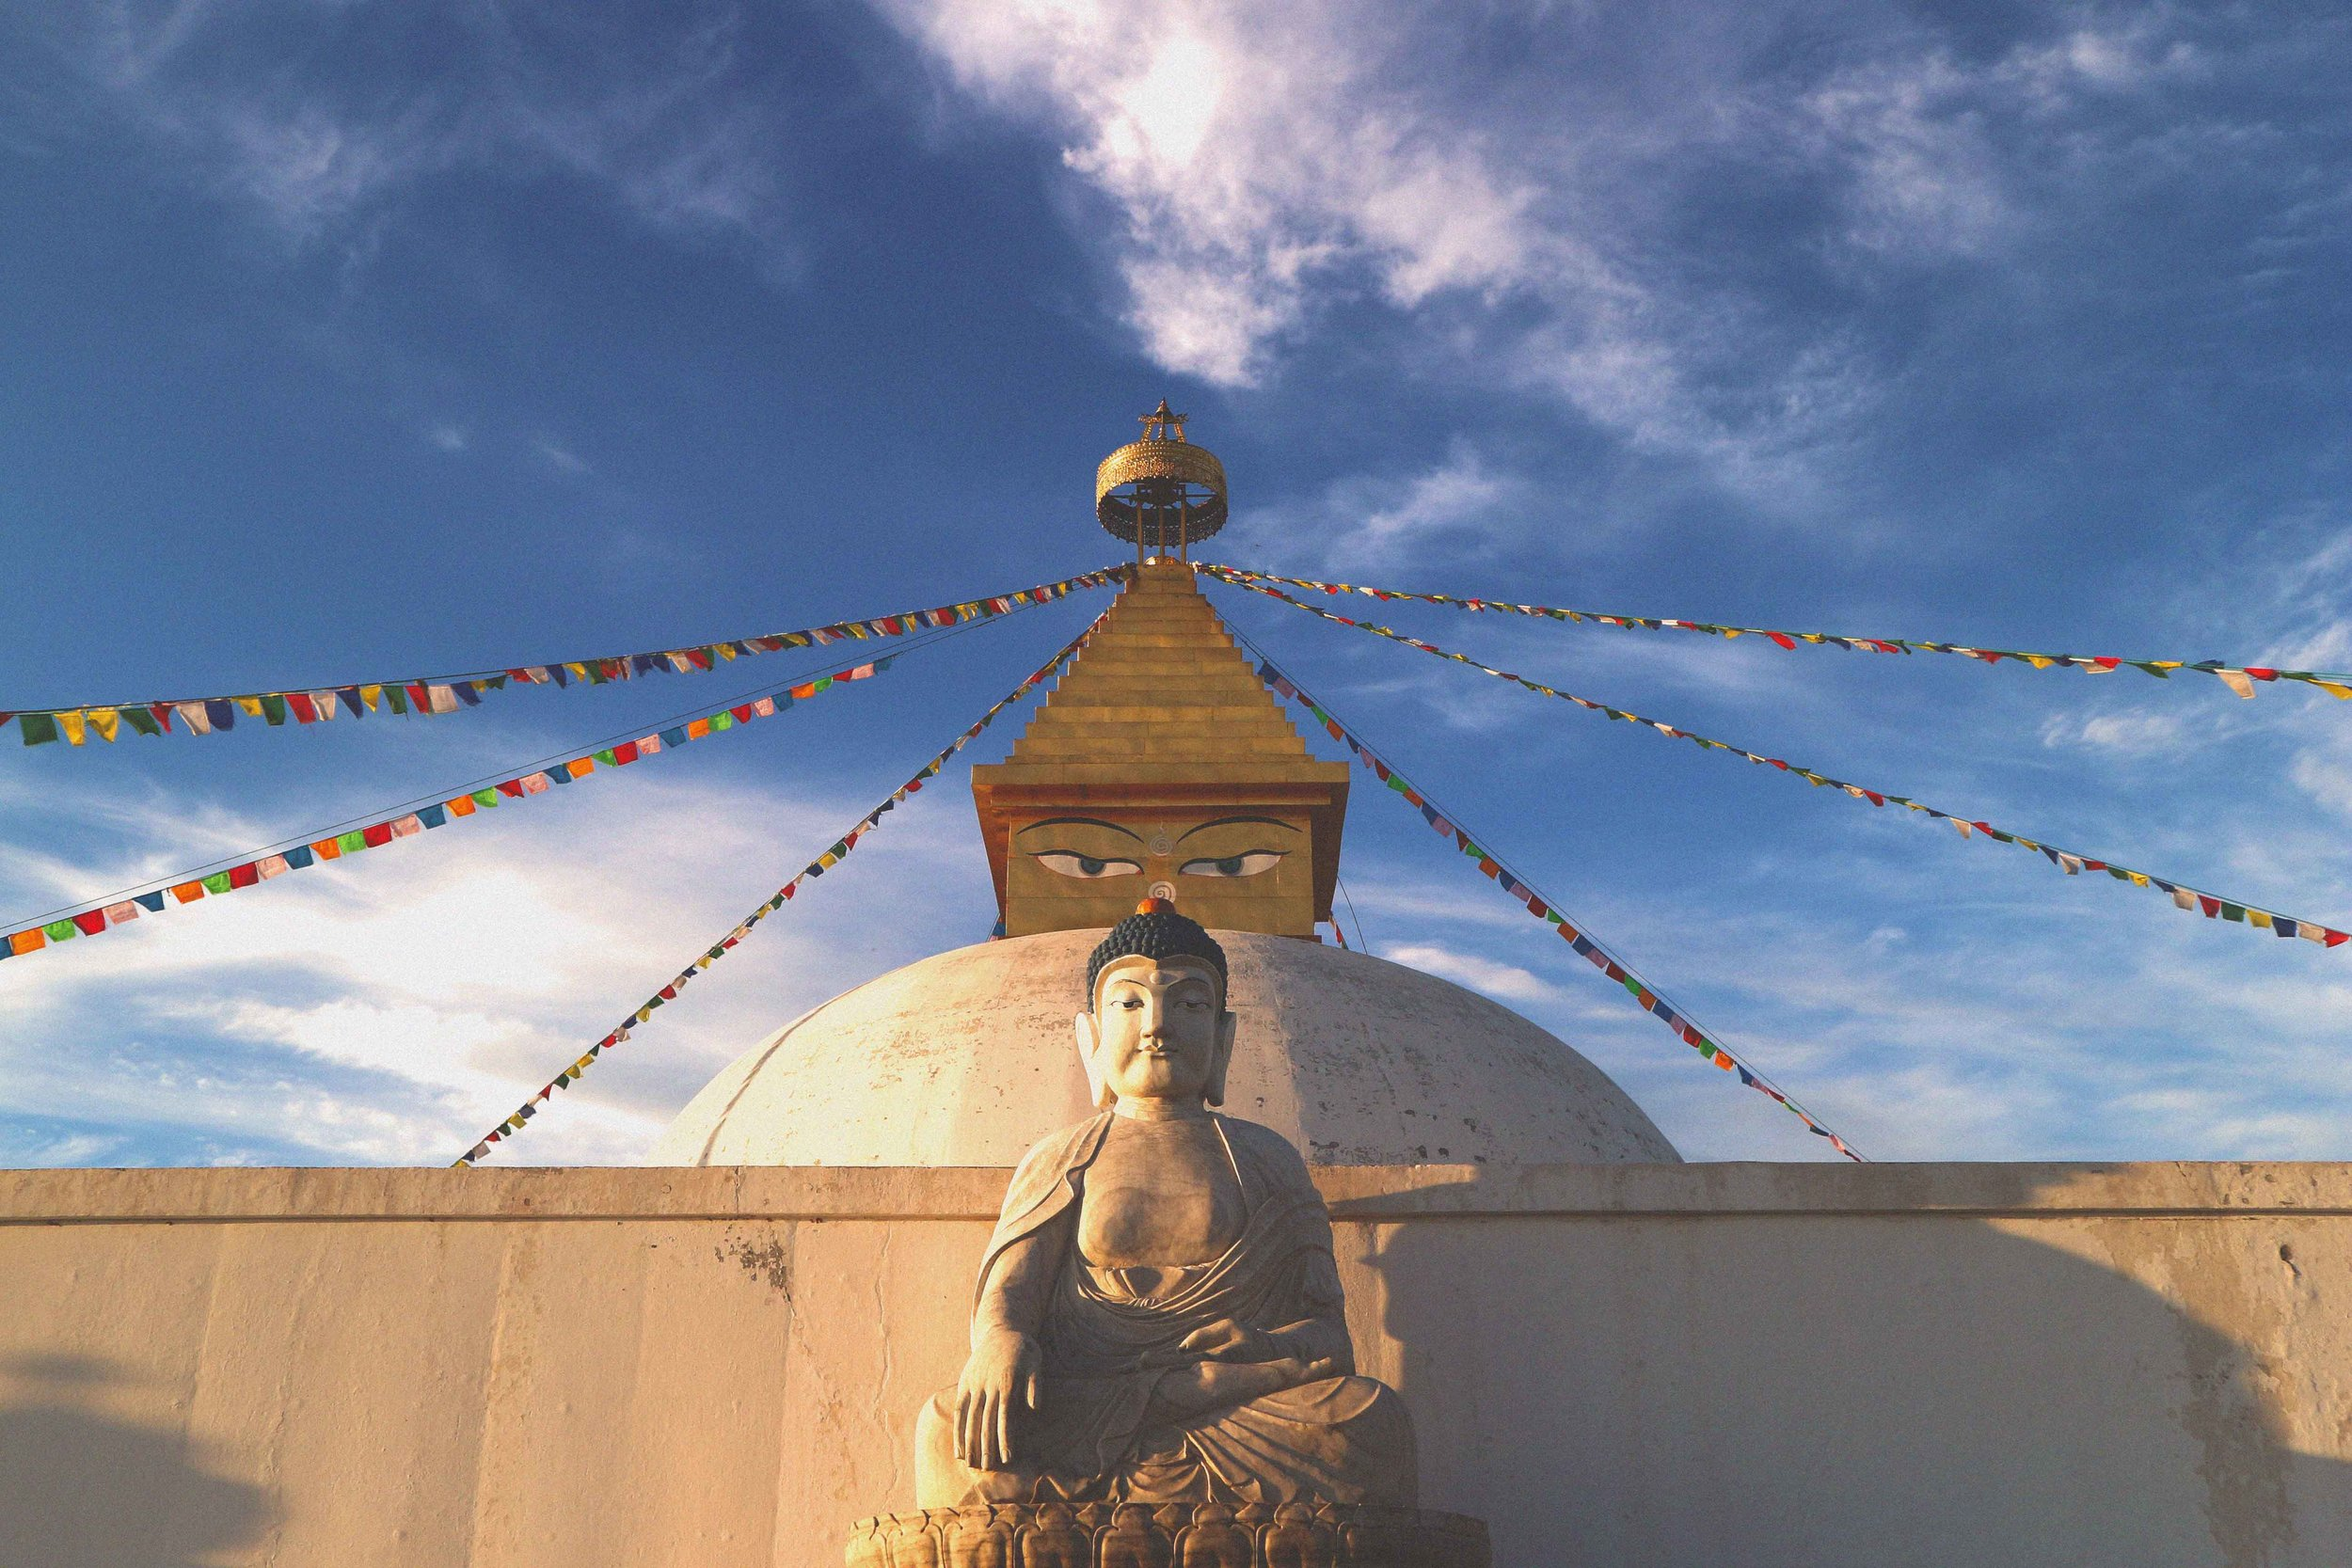 Buddhist temples and monasteries have an inherent ability to make you reflect and slowdown...